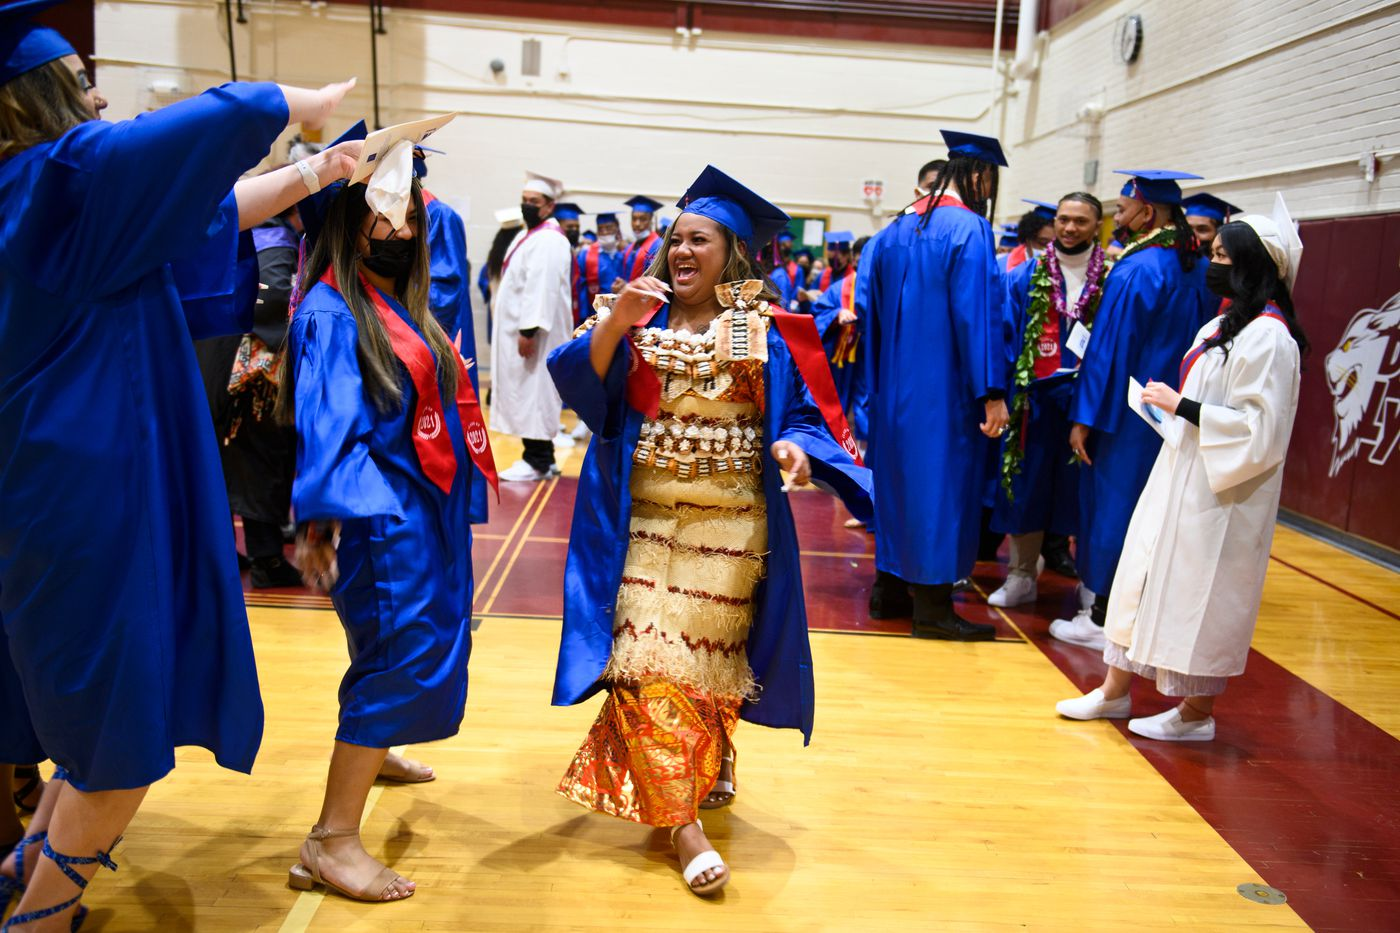 Mele Takafua wore traditional Tongan attire to her East High School graduation. (Marc Lester / ADN)